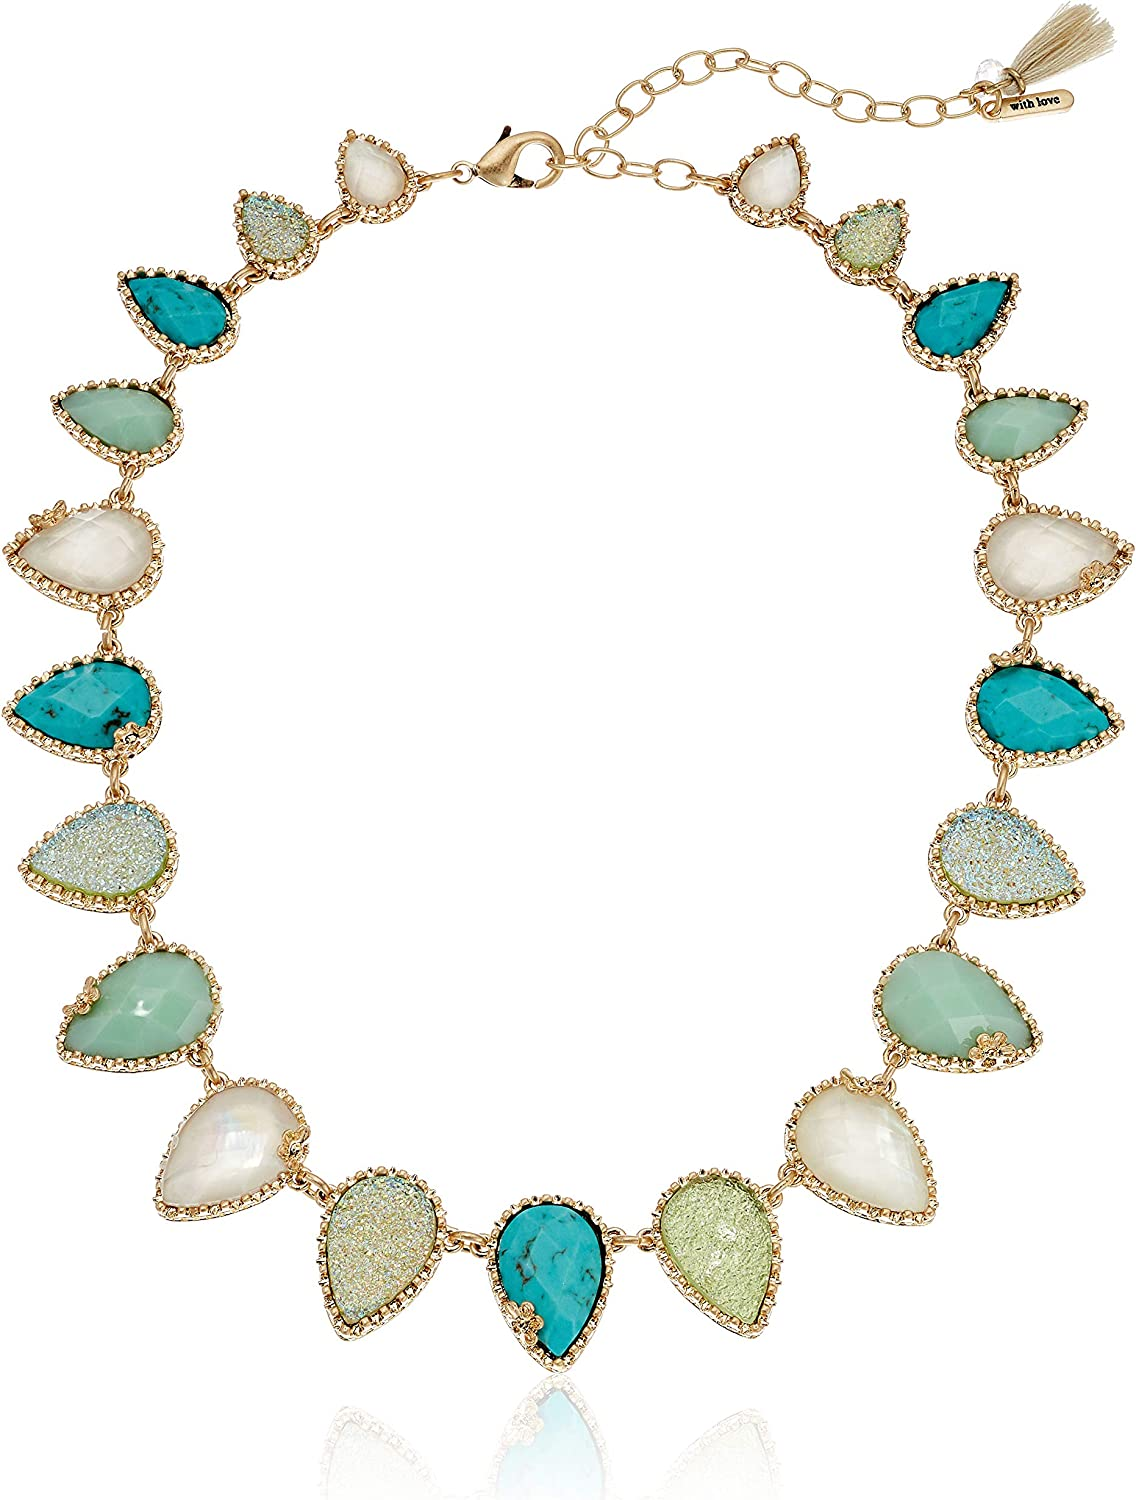 Lonna & Lilly Women's 16 Inch Stone Collar Gold Necklace, Blue